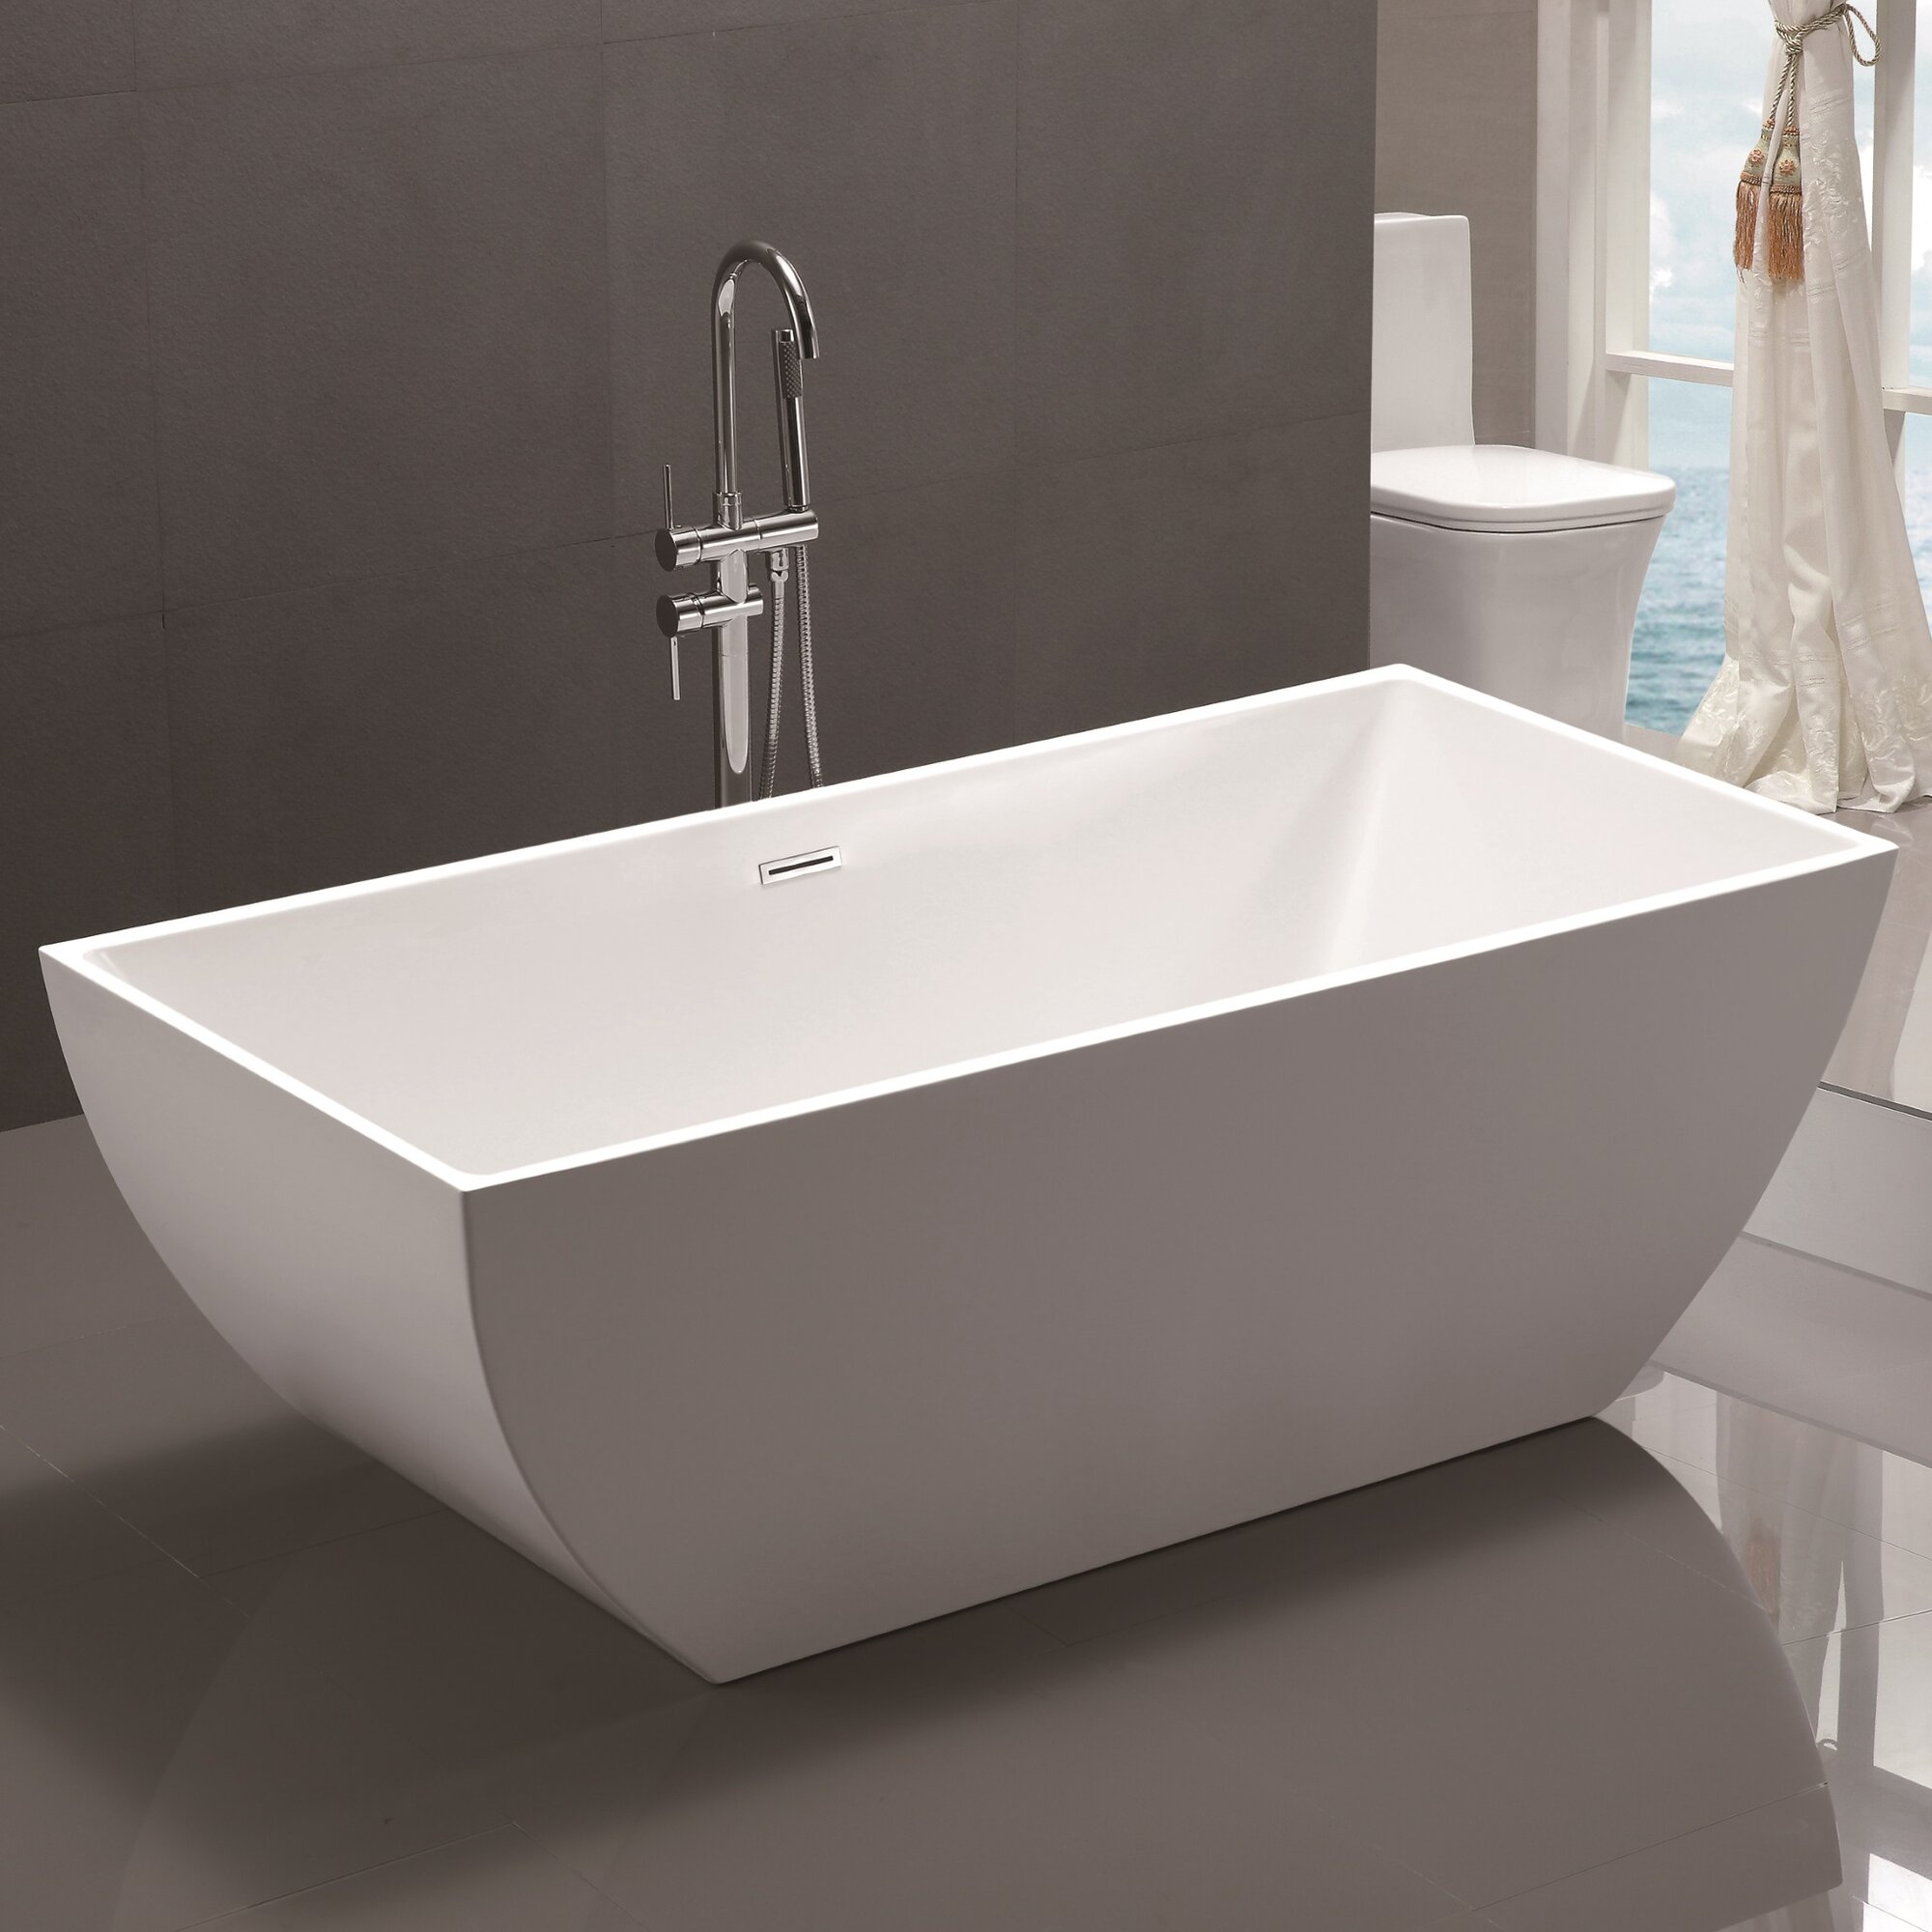 Vanity Art 59 X 29 5 Freestanding Soaking Bathtub